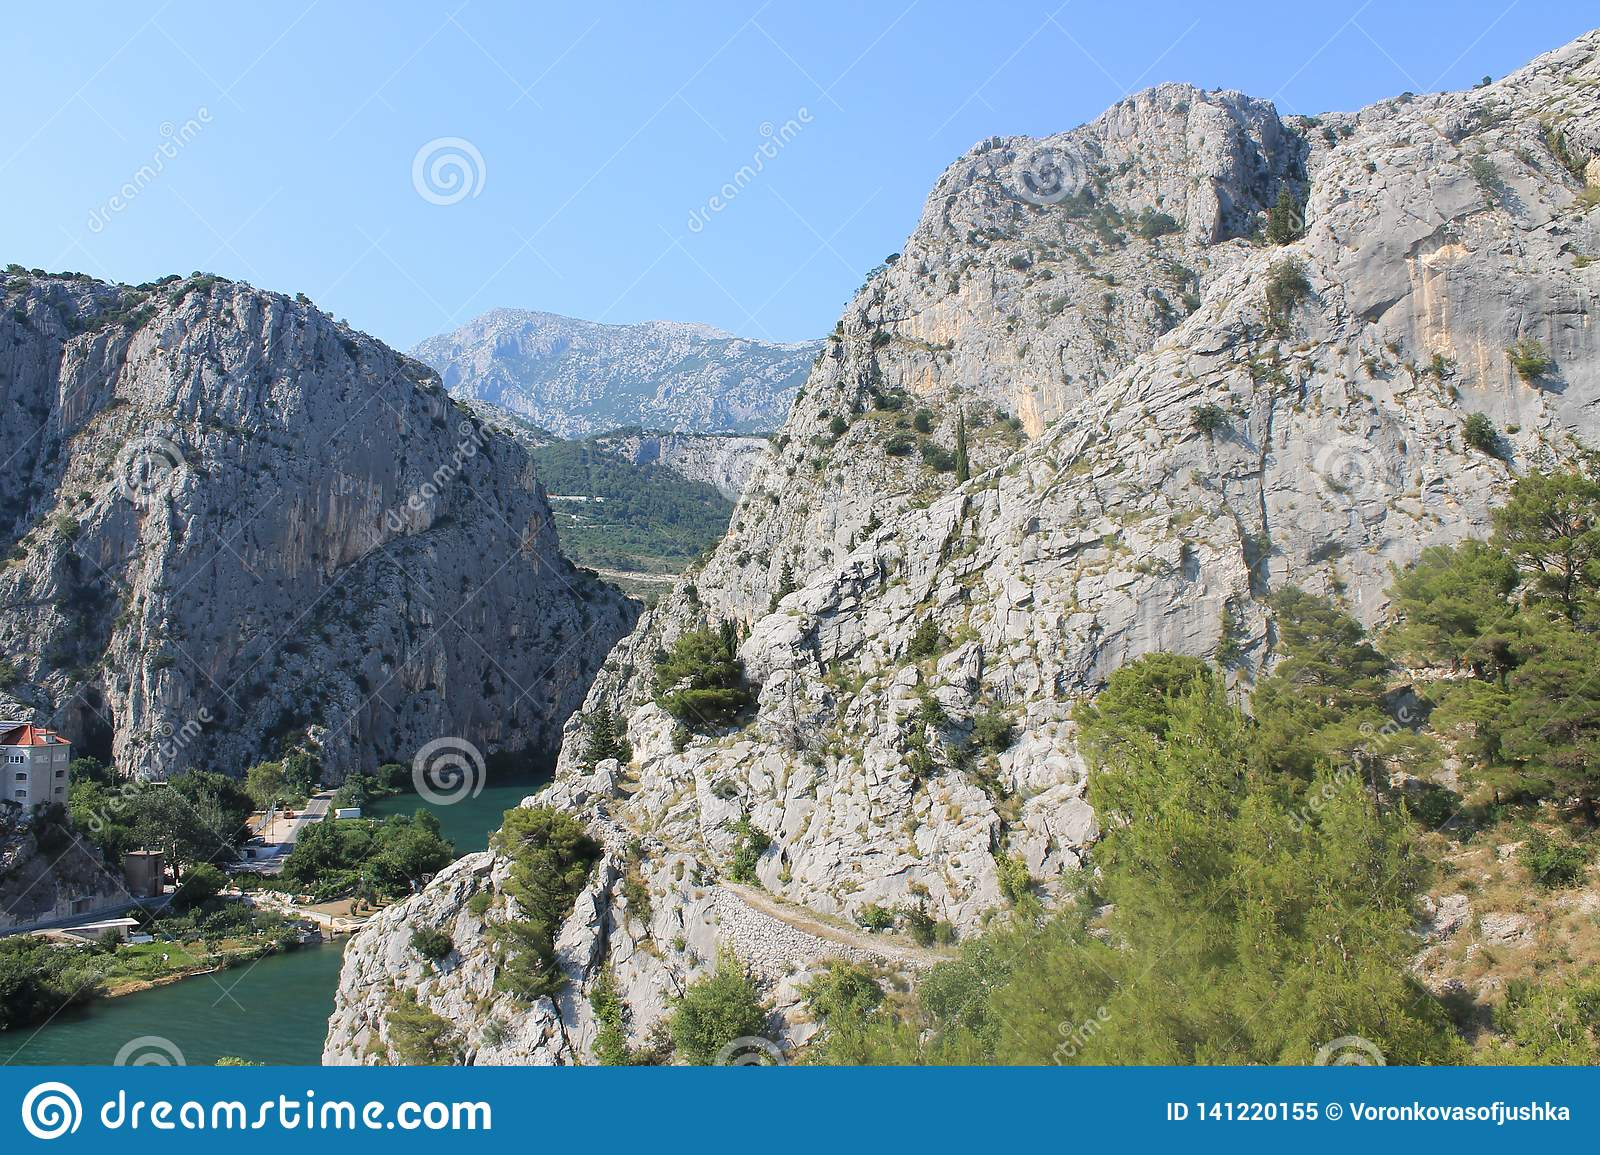 The canyon of the Cetina river in omiš, Croatia